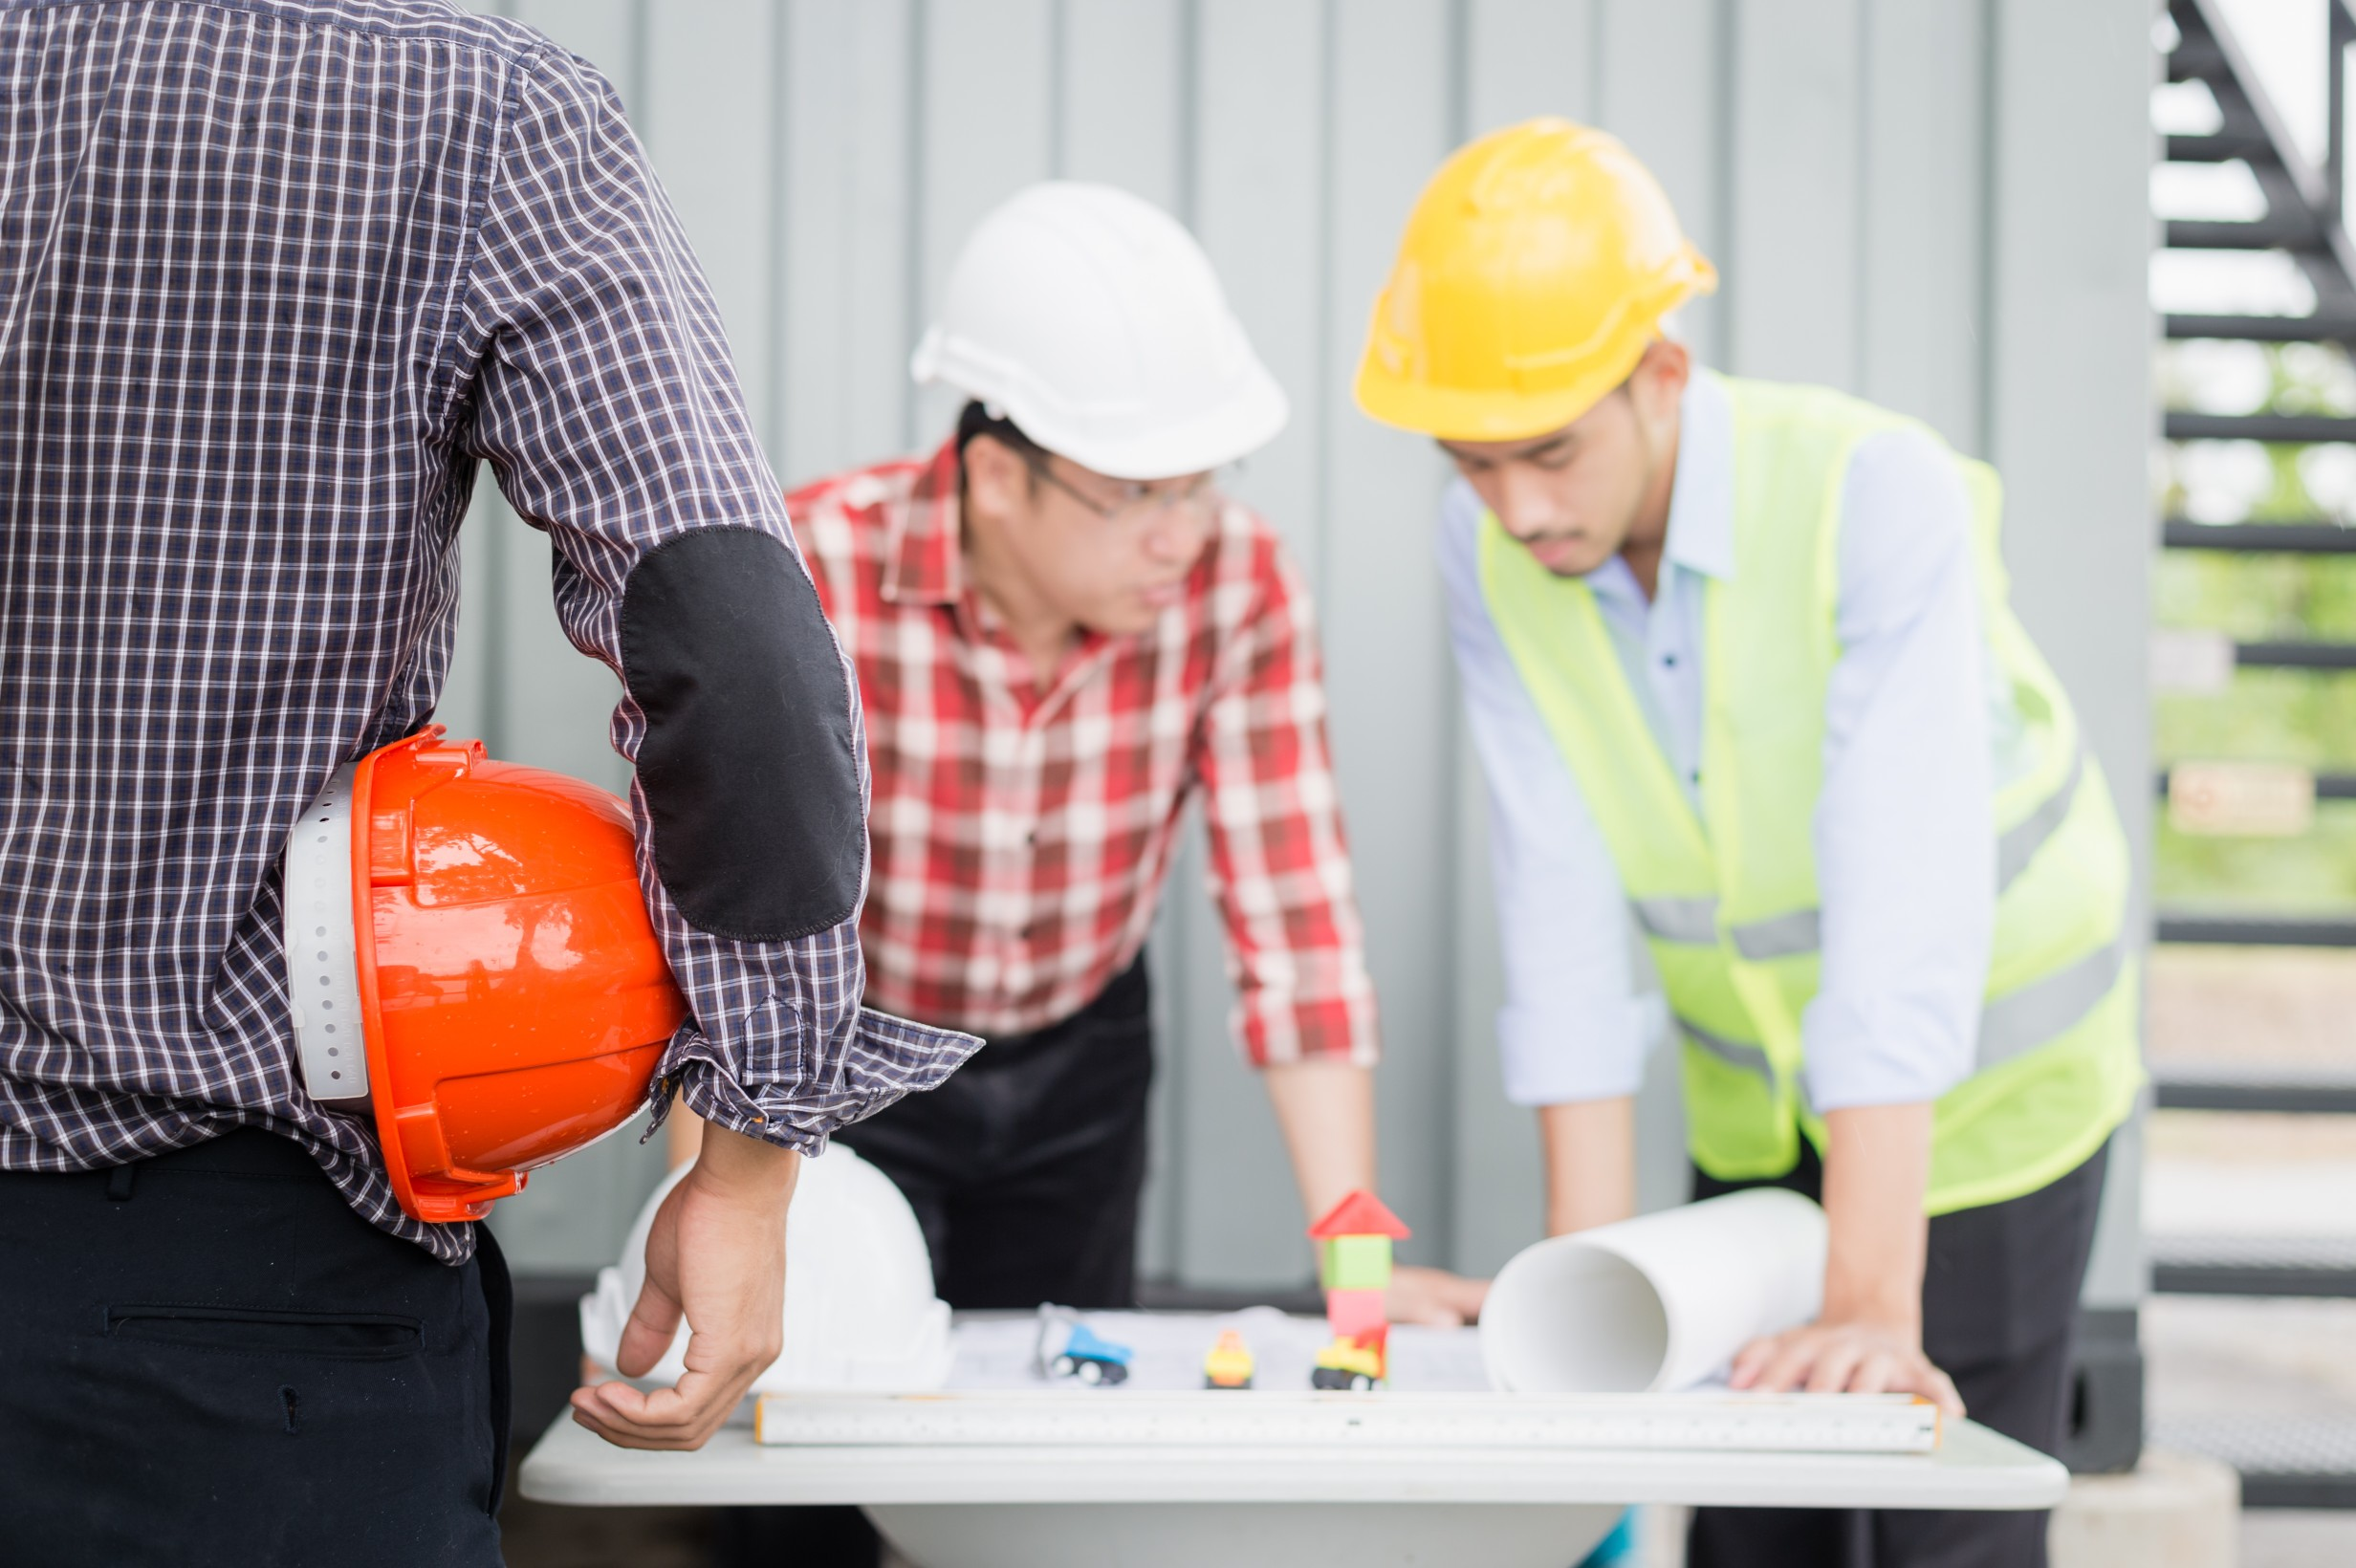 Commercial Building Contractors: 7 Things You Should Look For